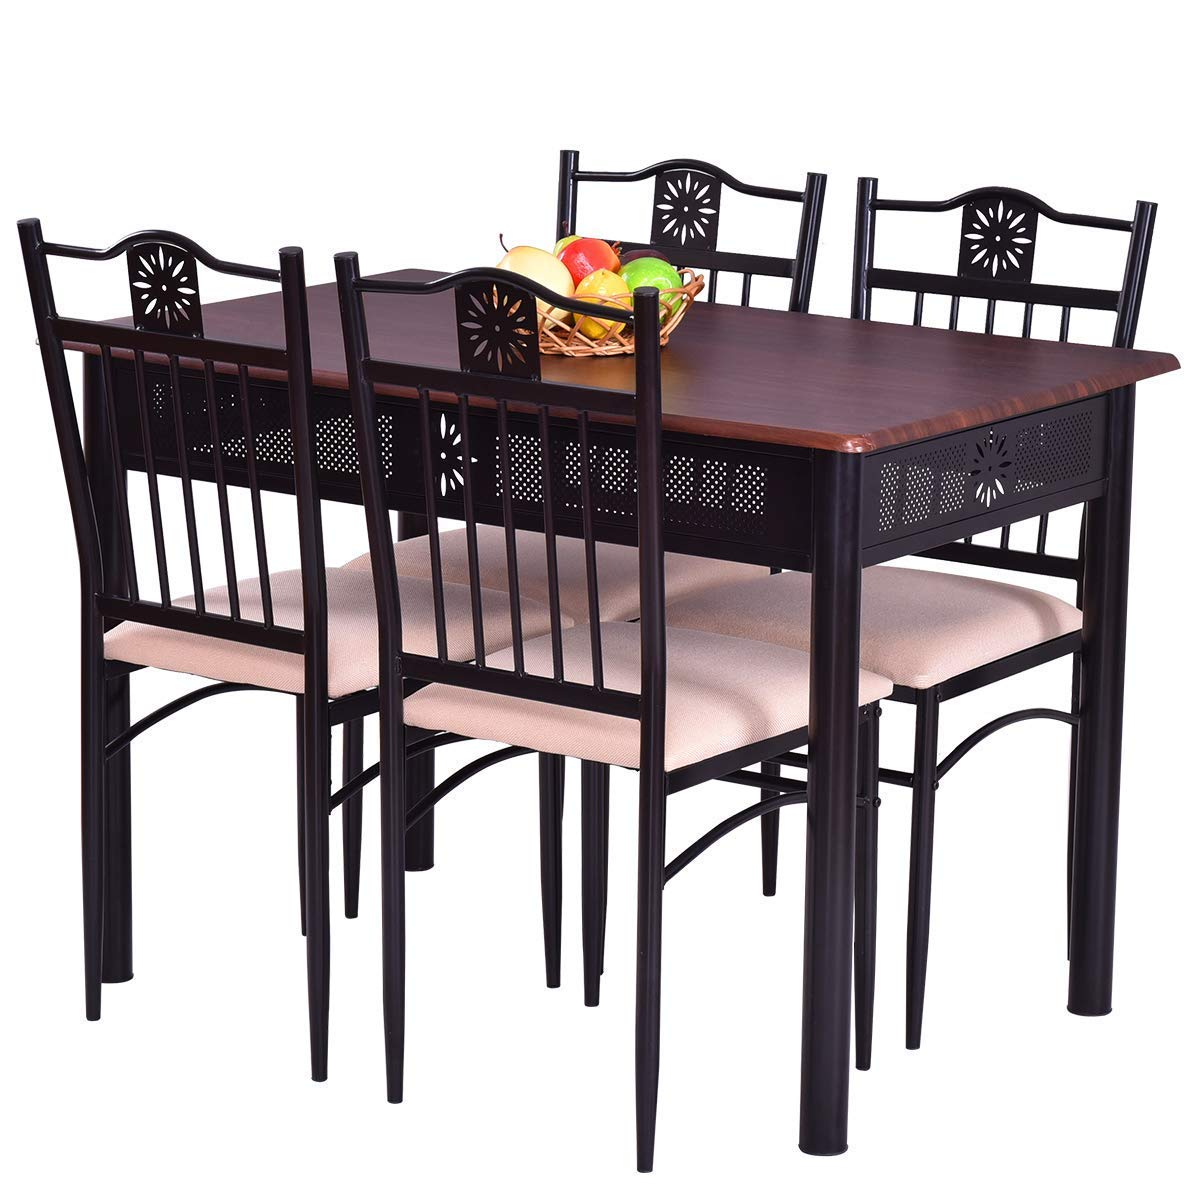 Casart 5 PCS Dining Table and Chairs Set Vintage Retro Wood Top Metal Frame Padded Seat Dining Table Set Home Kitchen Dining Room Furniture